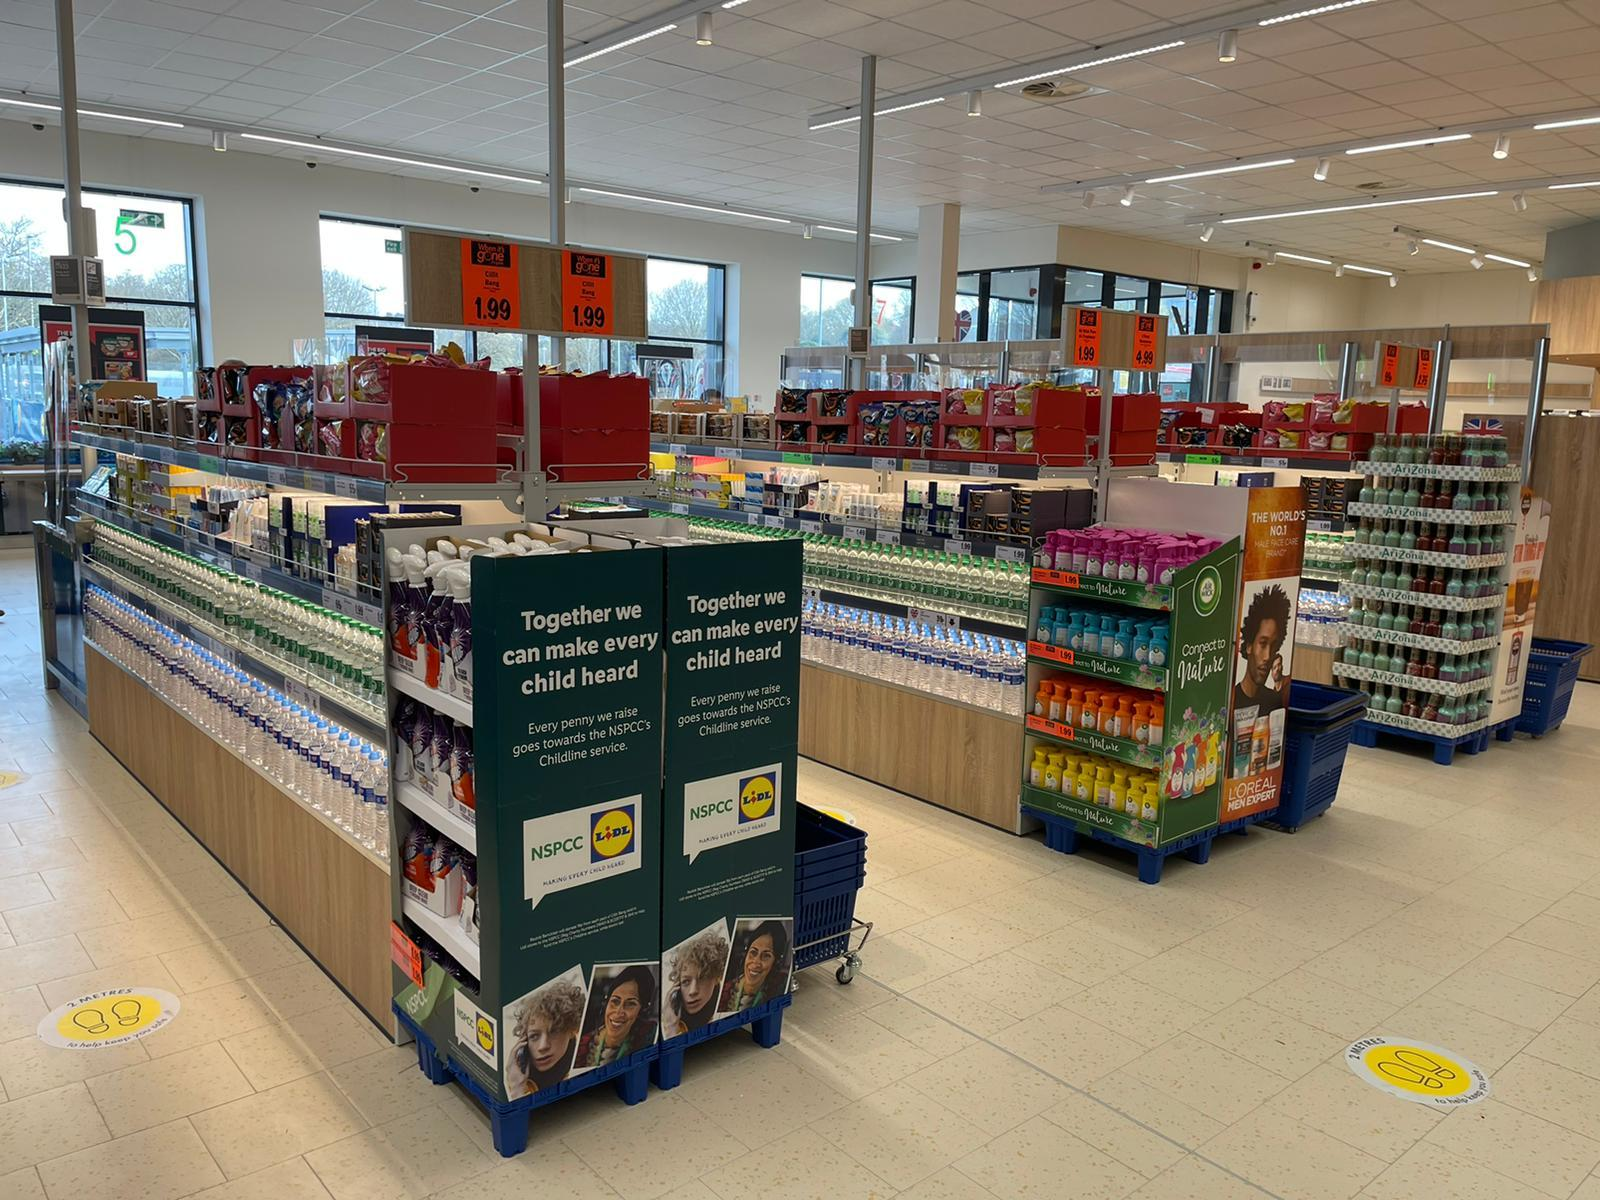 A new Lidl supermarket has been opened at the Goldstone Retail Park in Hove